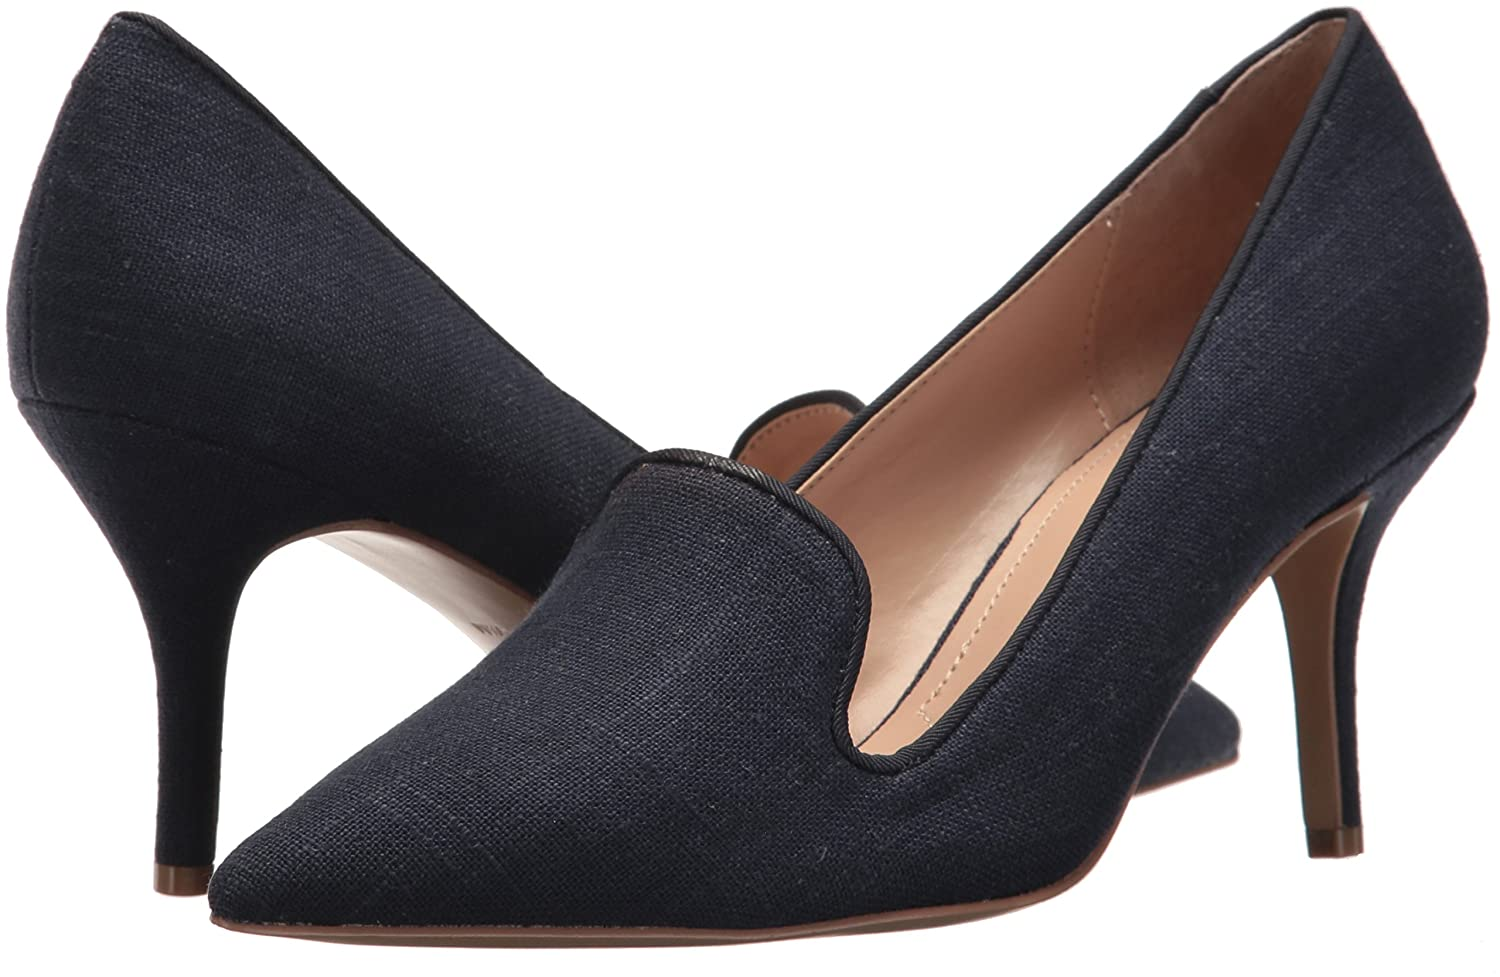 Charles David Women's Amari Pump B076MBT962 8.5 B(M) US|Navy